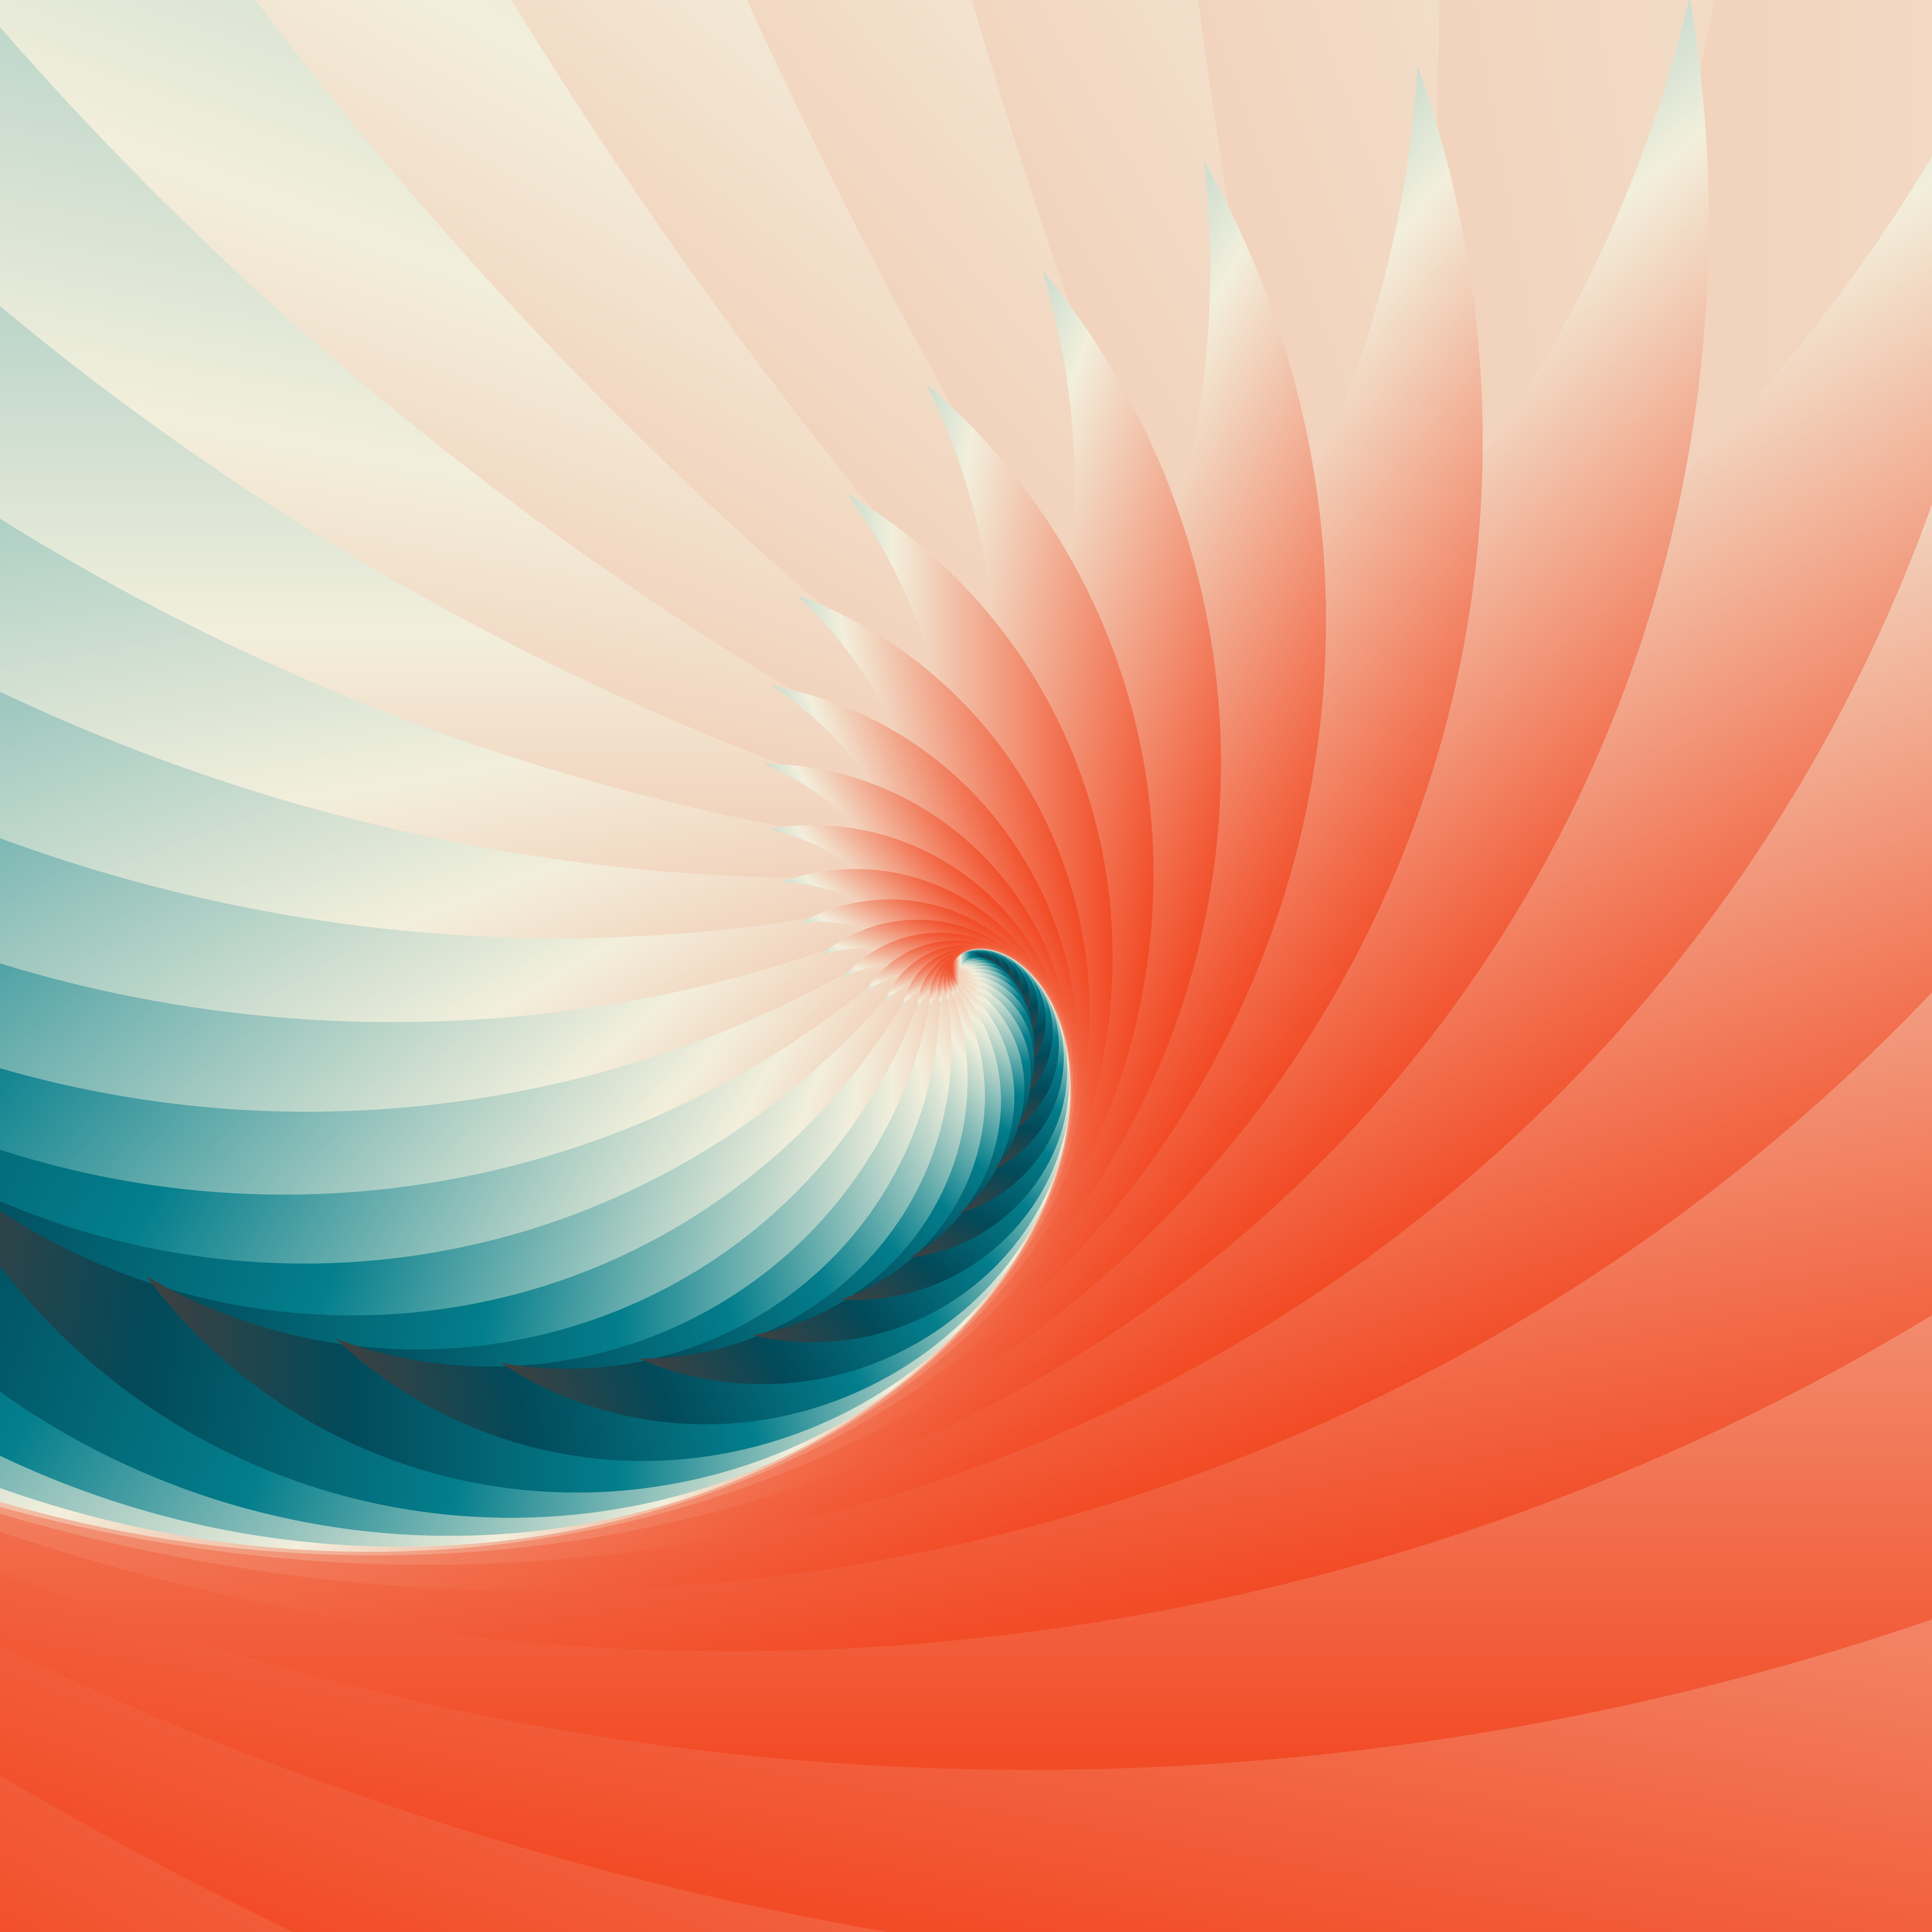 1366x768 5k Abstract Shape 1366x768 Resolution HD 4k